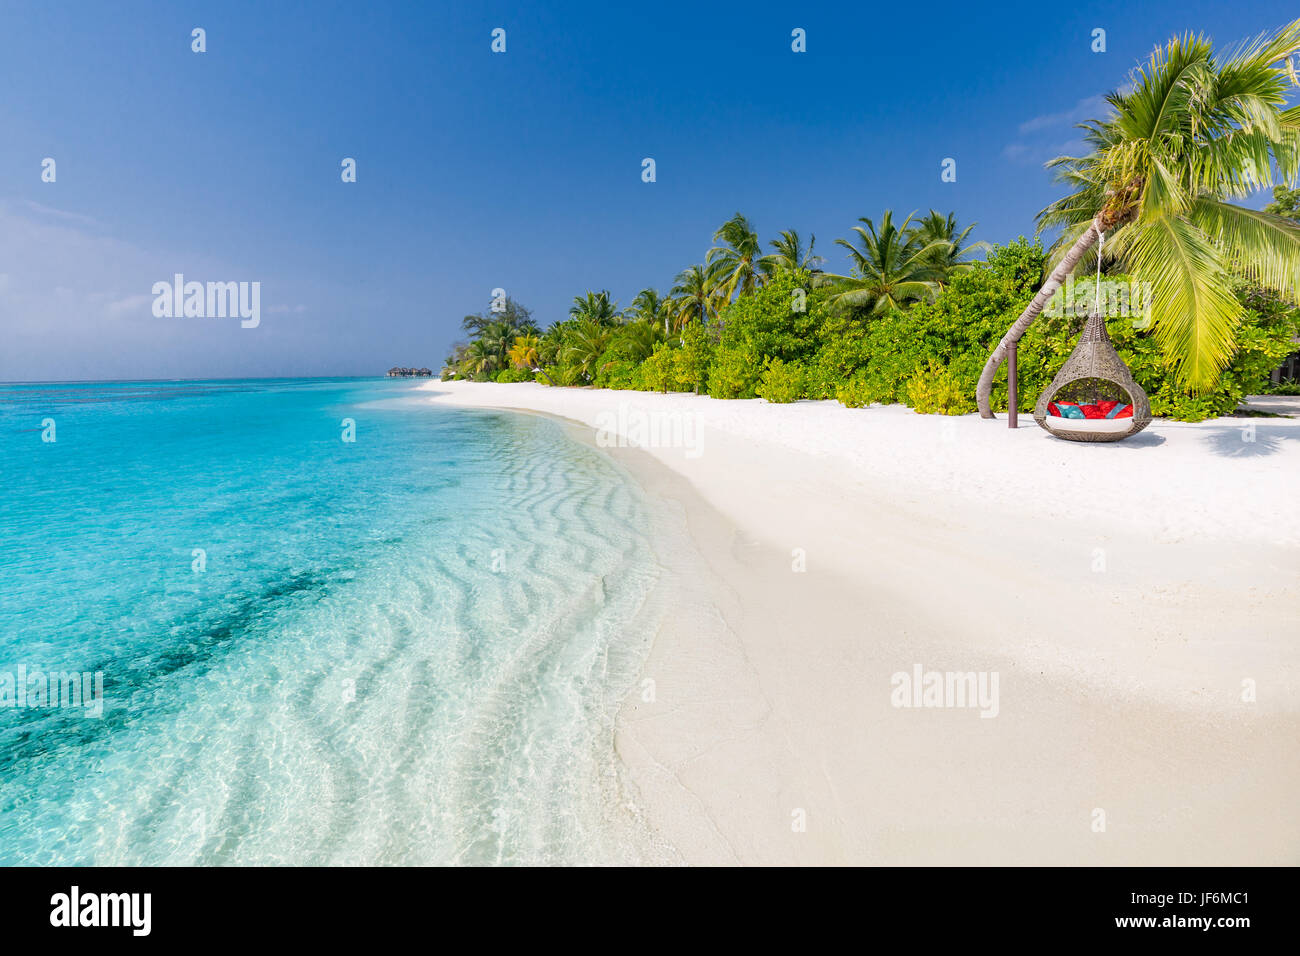 Perfect tropical beach. Romantic hammock or swing on white sand beach and palm trees under blue sky. Inspirational - Stock Image